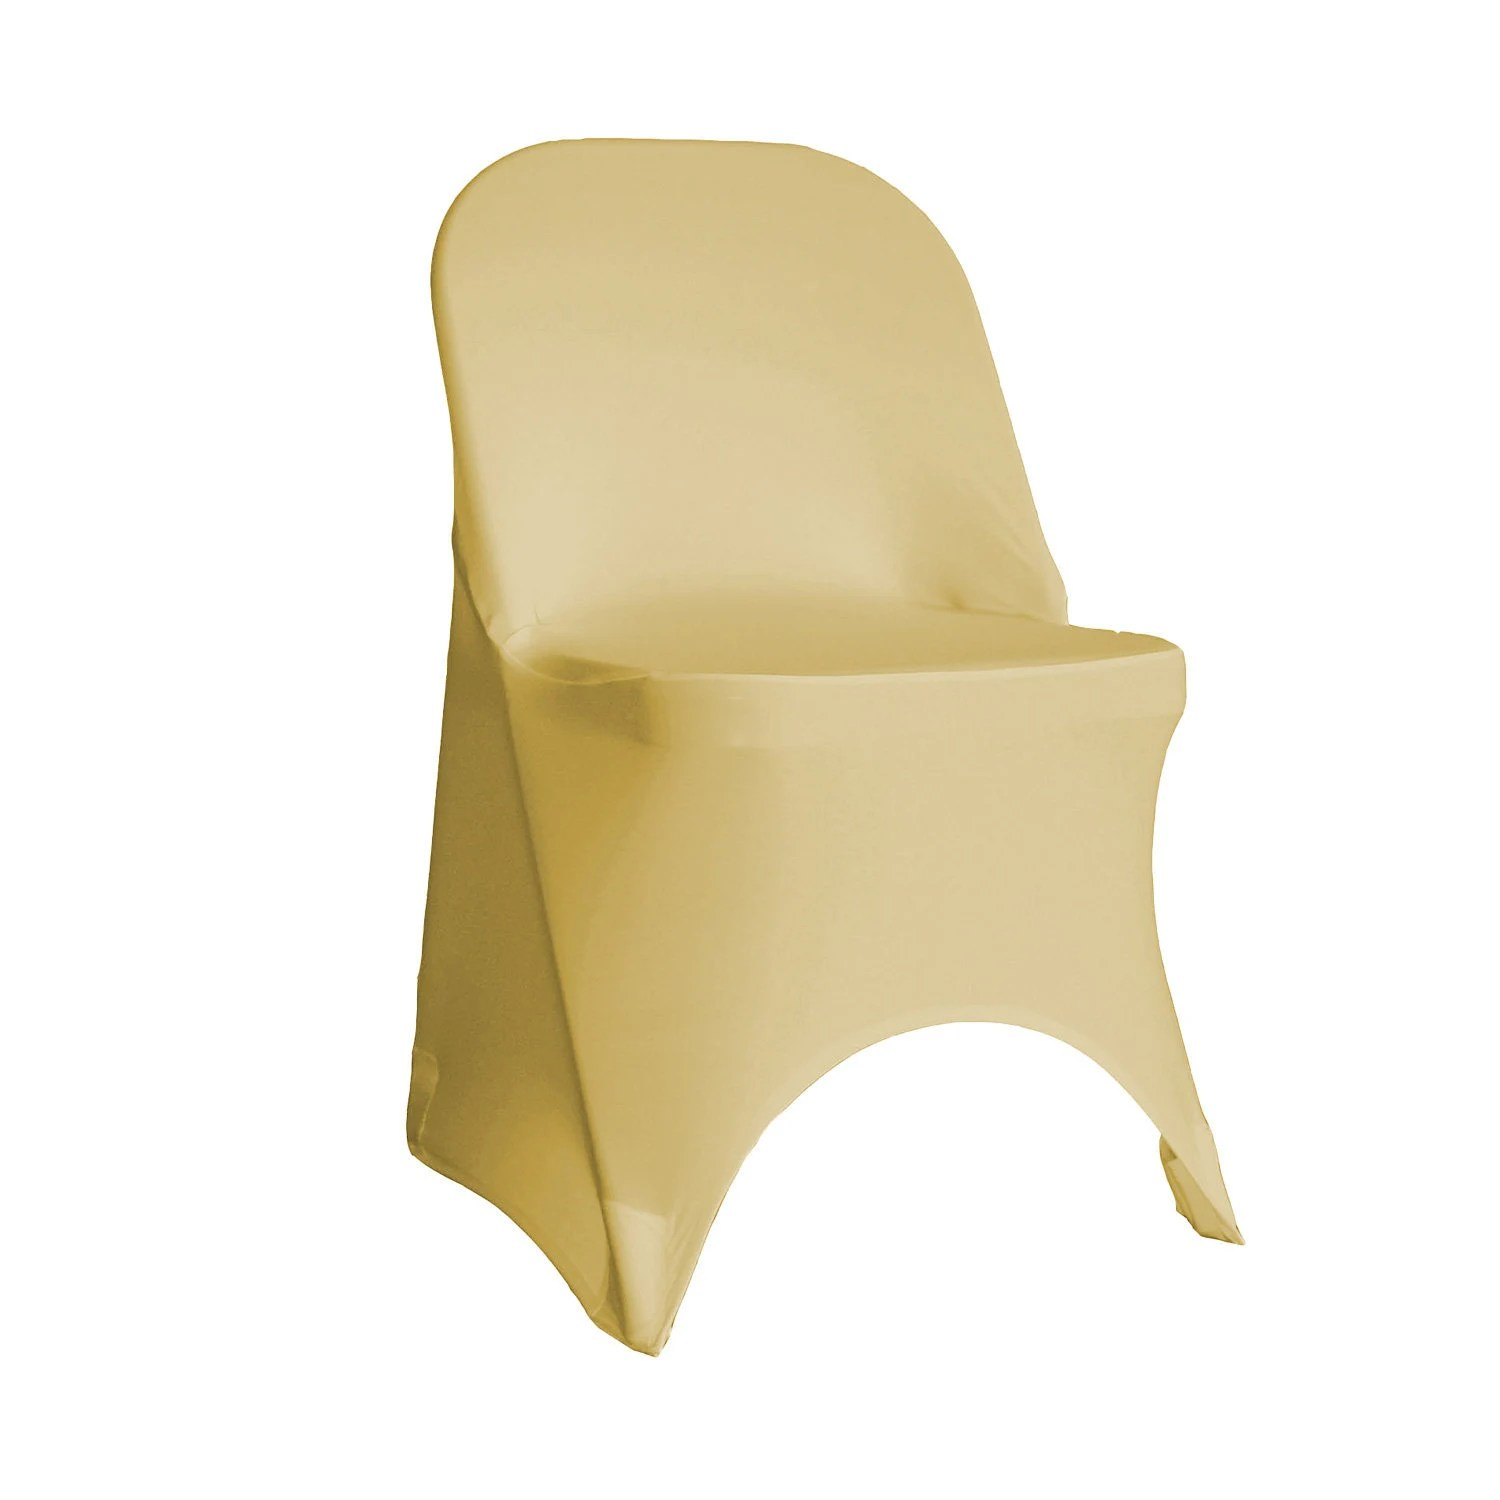 yellow chair covers wedding cover hire christchurch etsy champagne stretch spandex folding